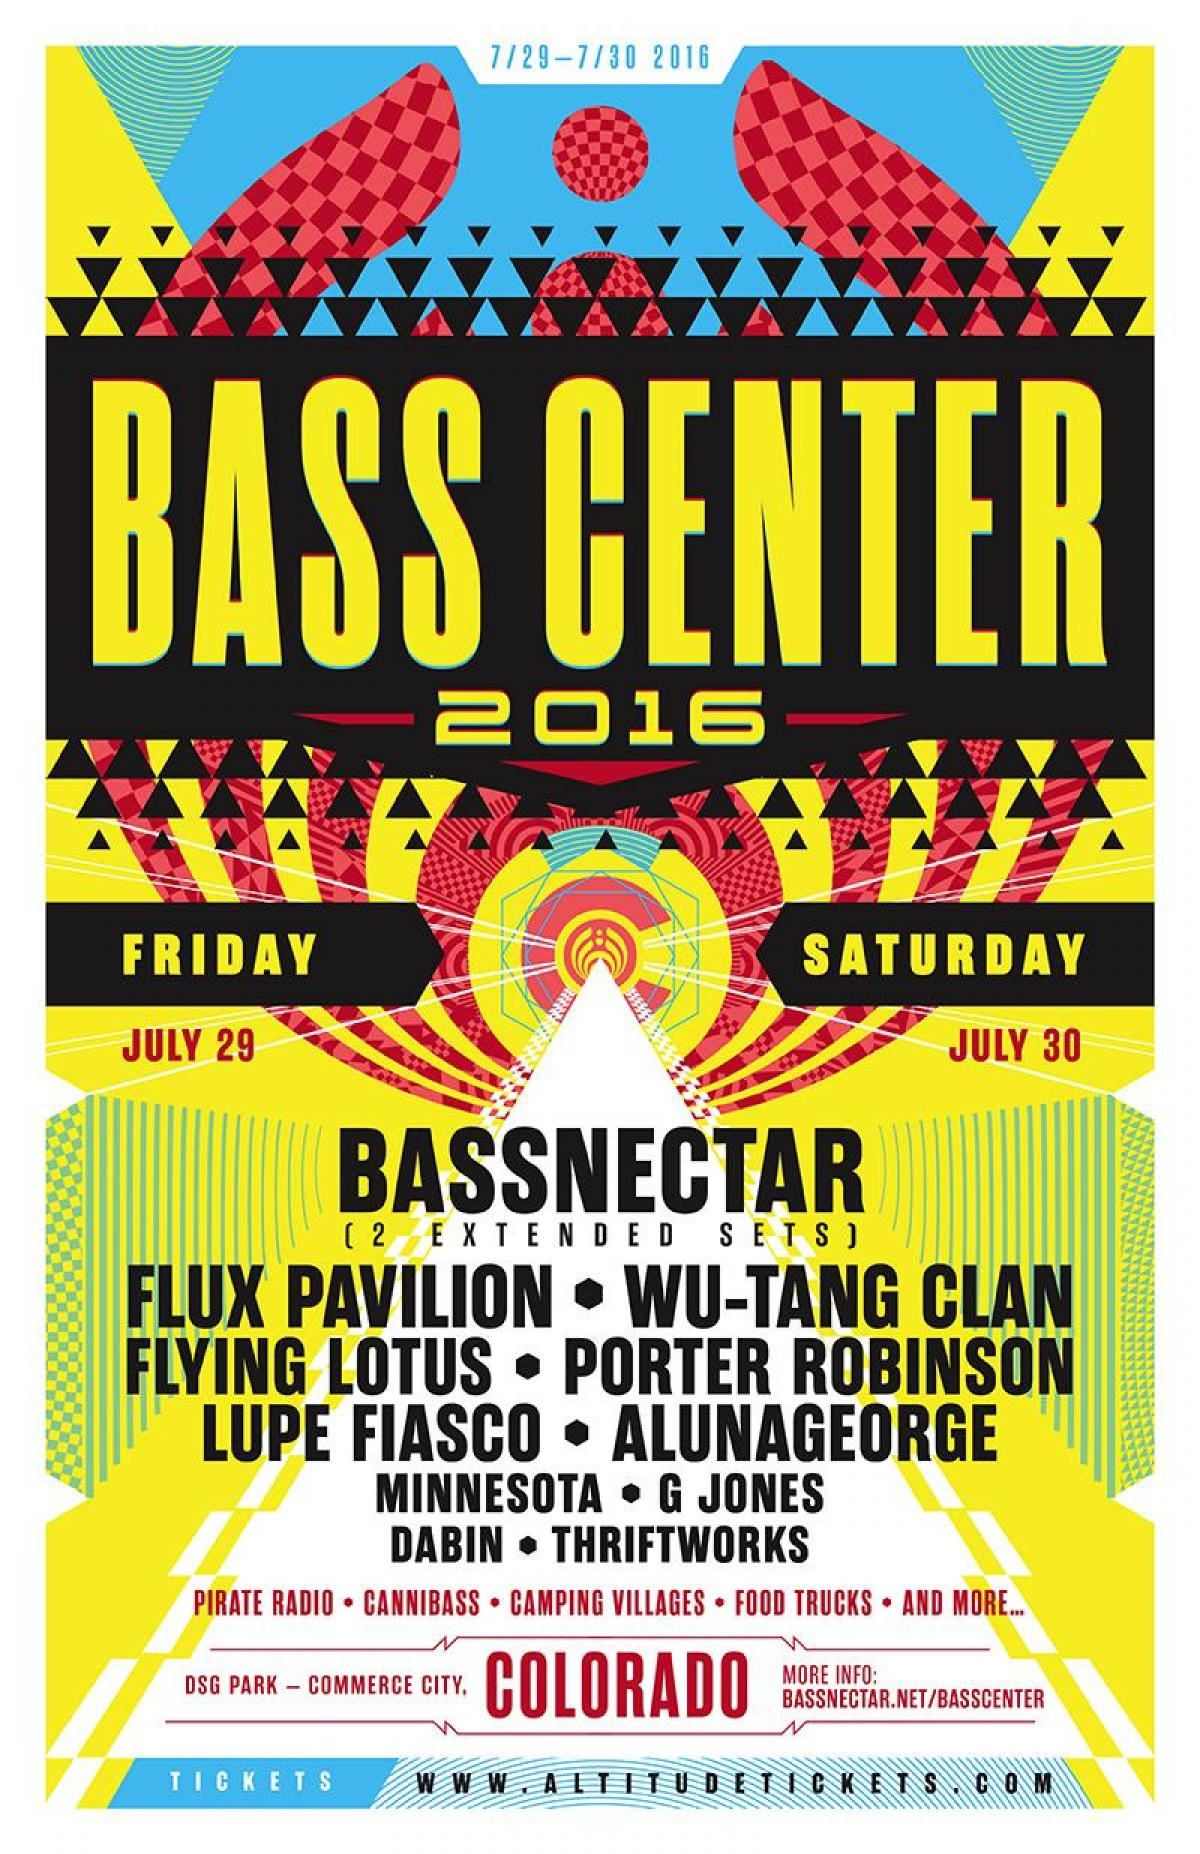 Get Ready For Bassnectar's Very Own Festival